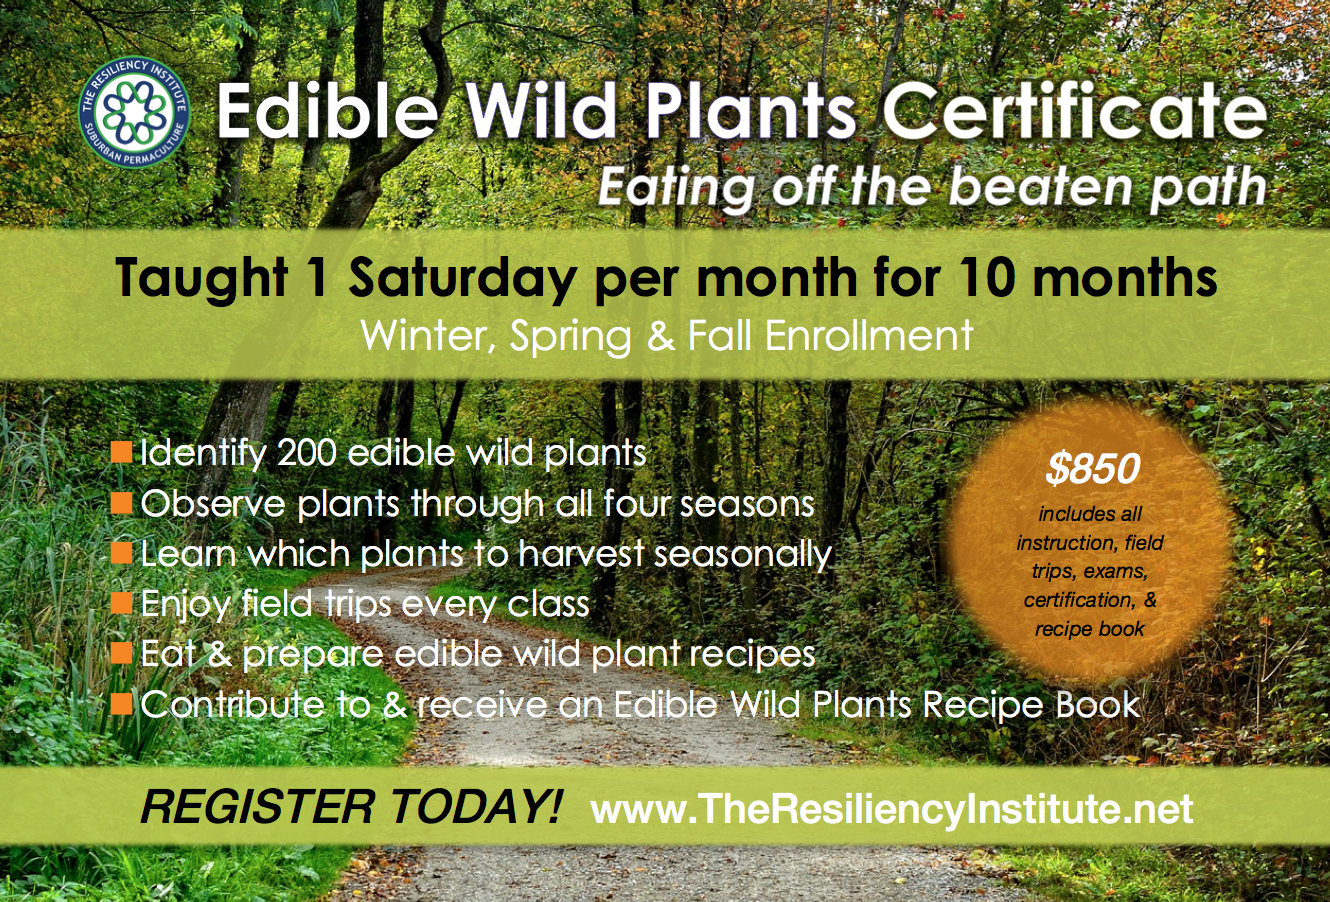 registration the resiliency institute edible wild plants certificate course spring registration